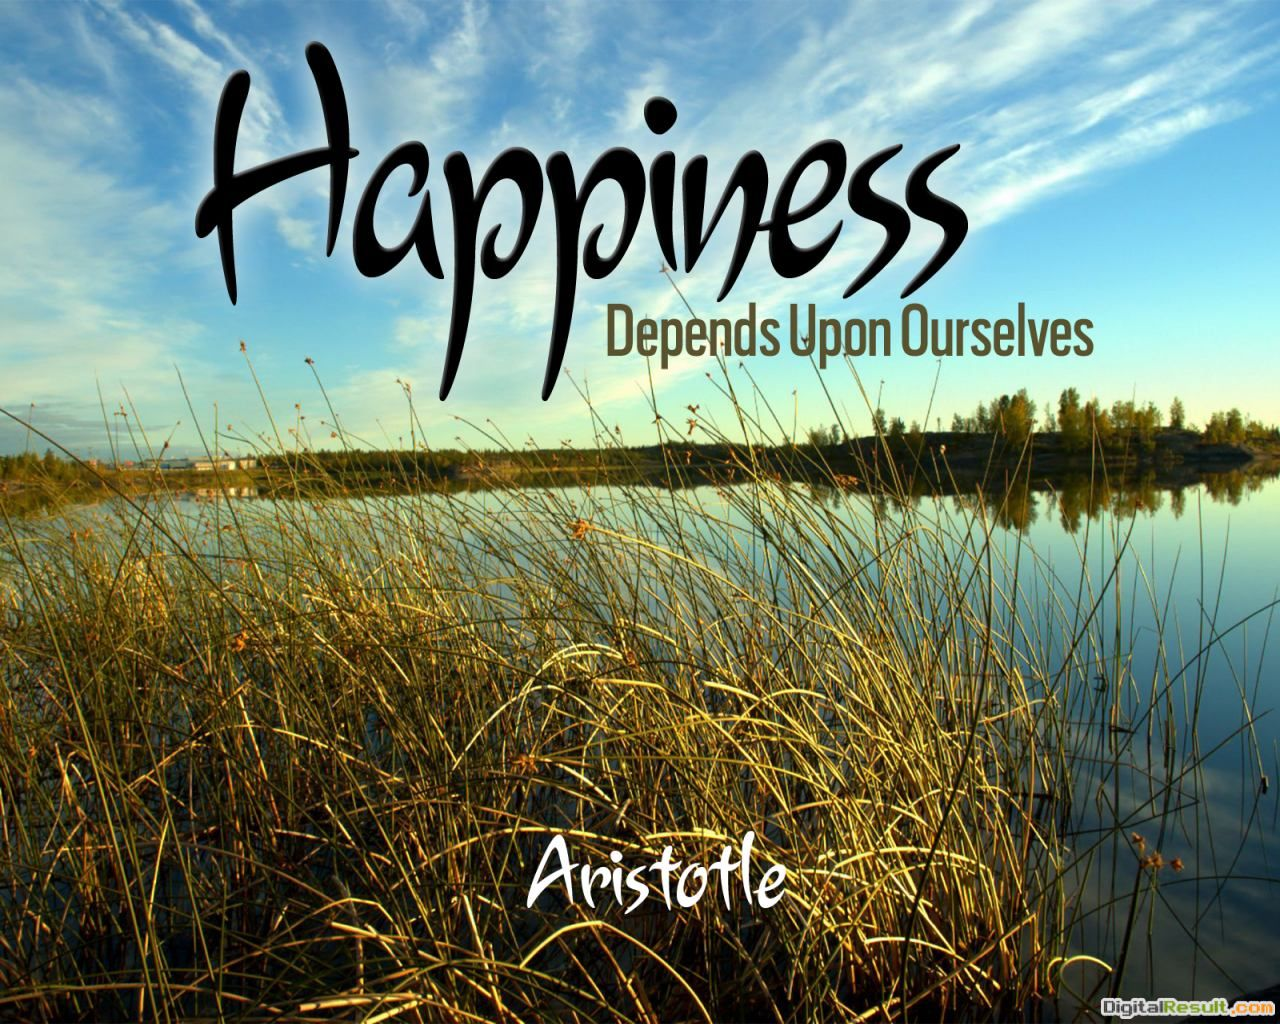 HAPPINESS9 ARISTOTLE 1094